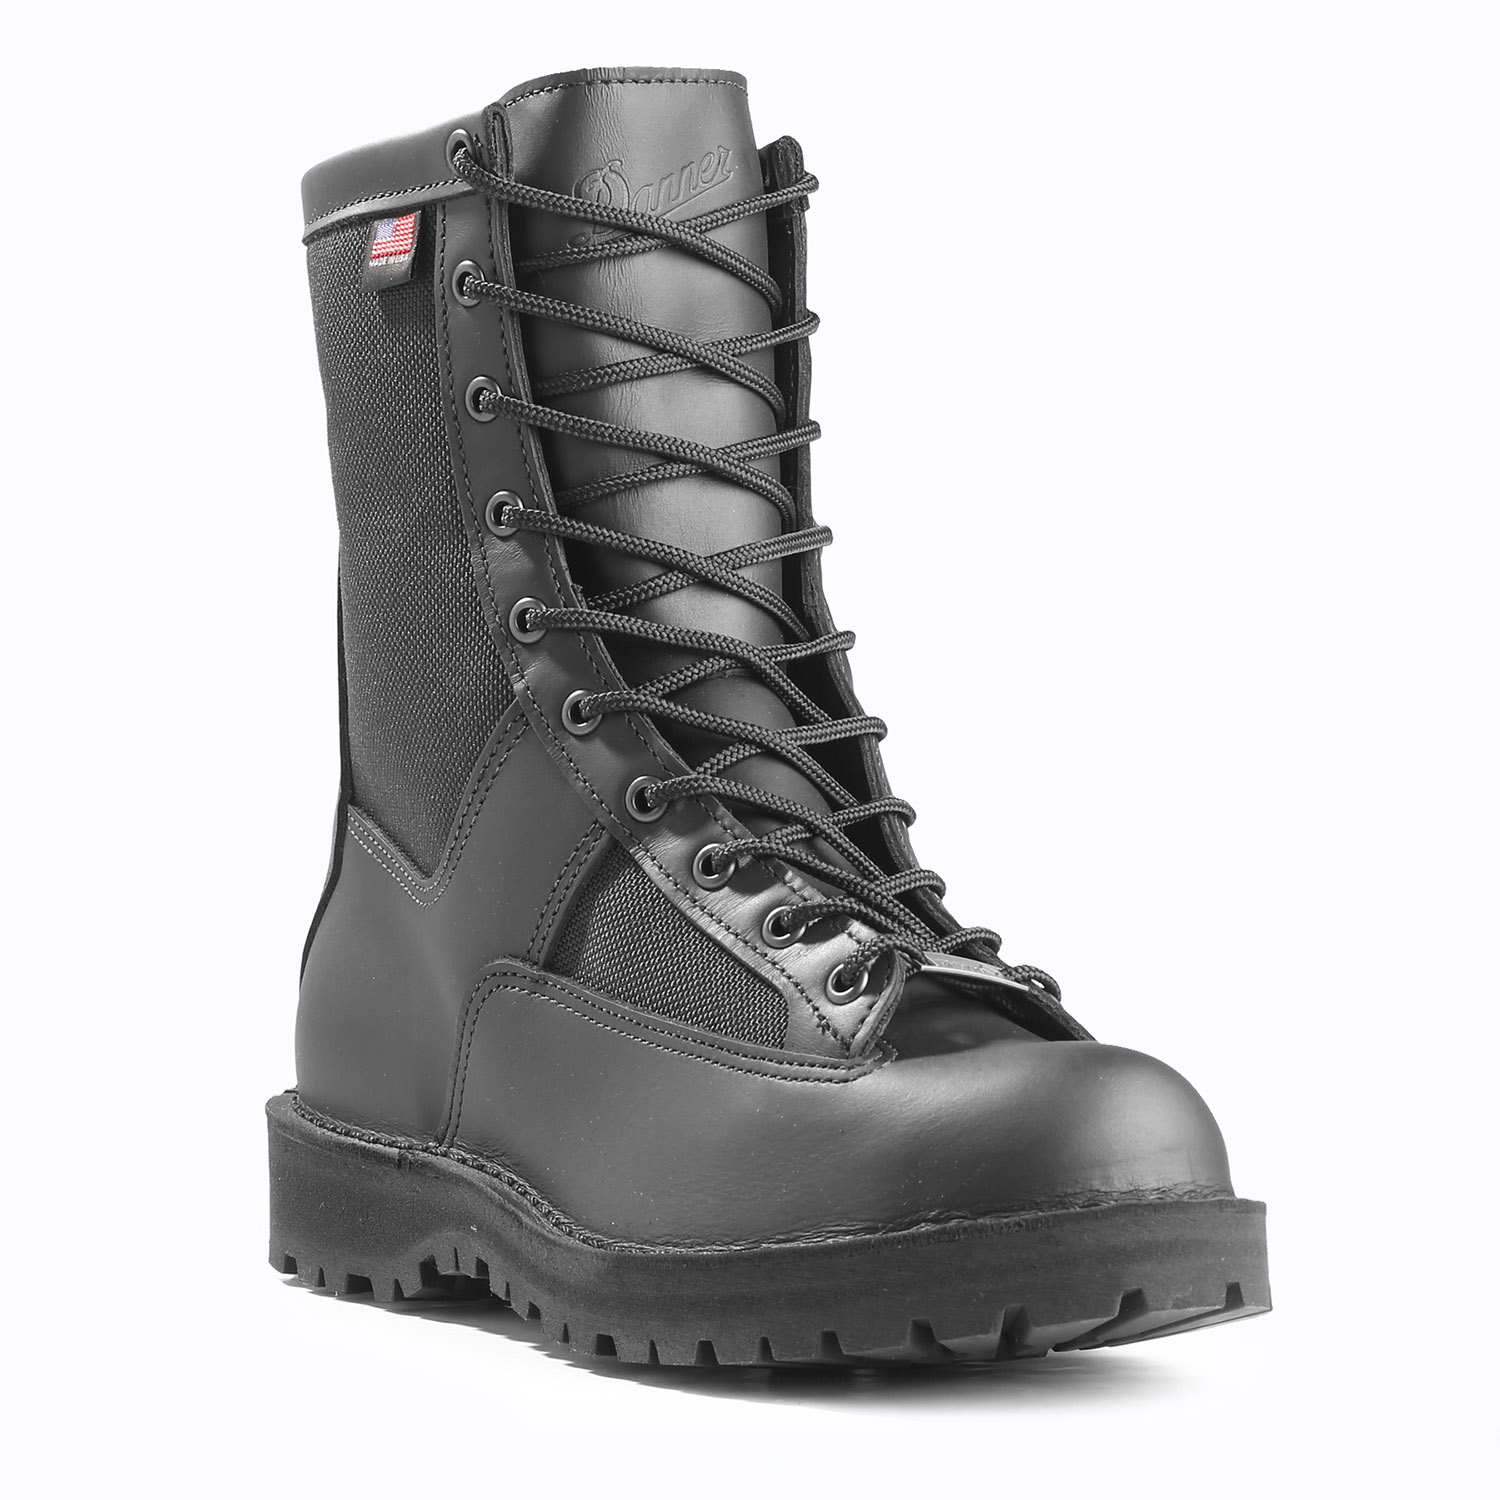 "Danner Acadia 8"" Waterproof Duty Boot"